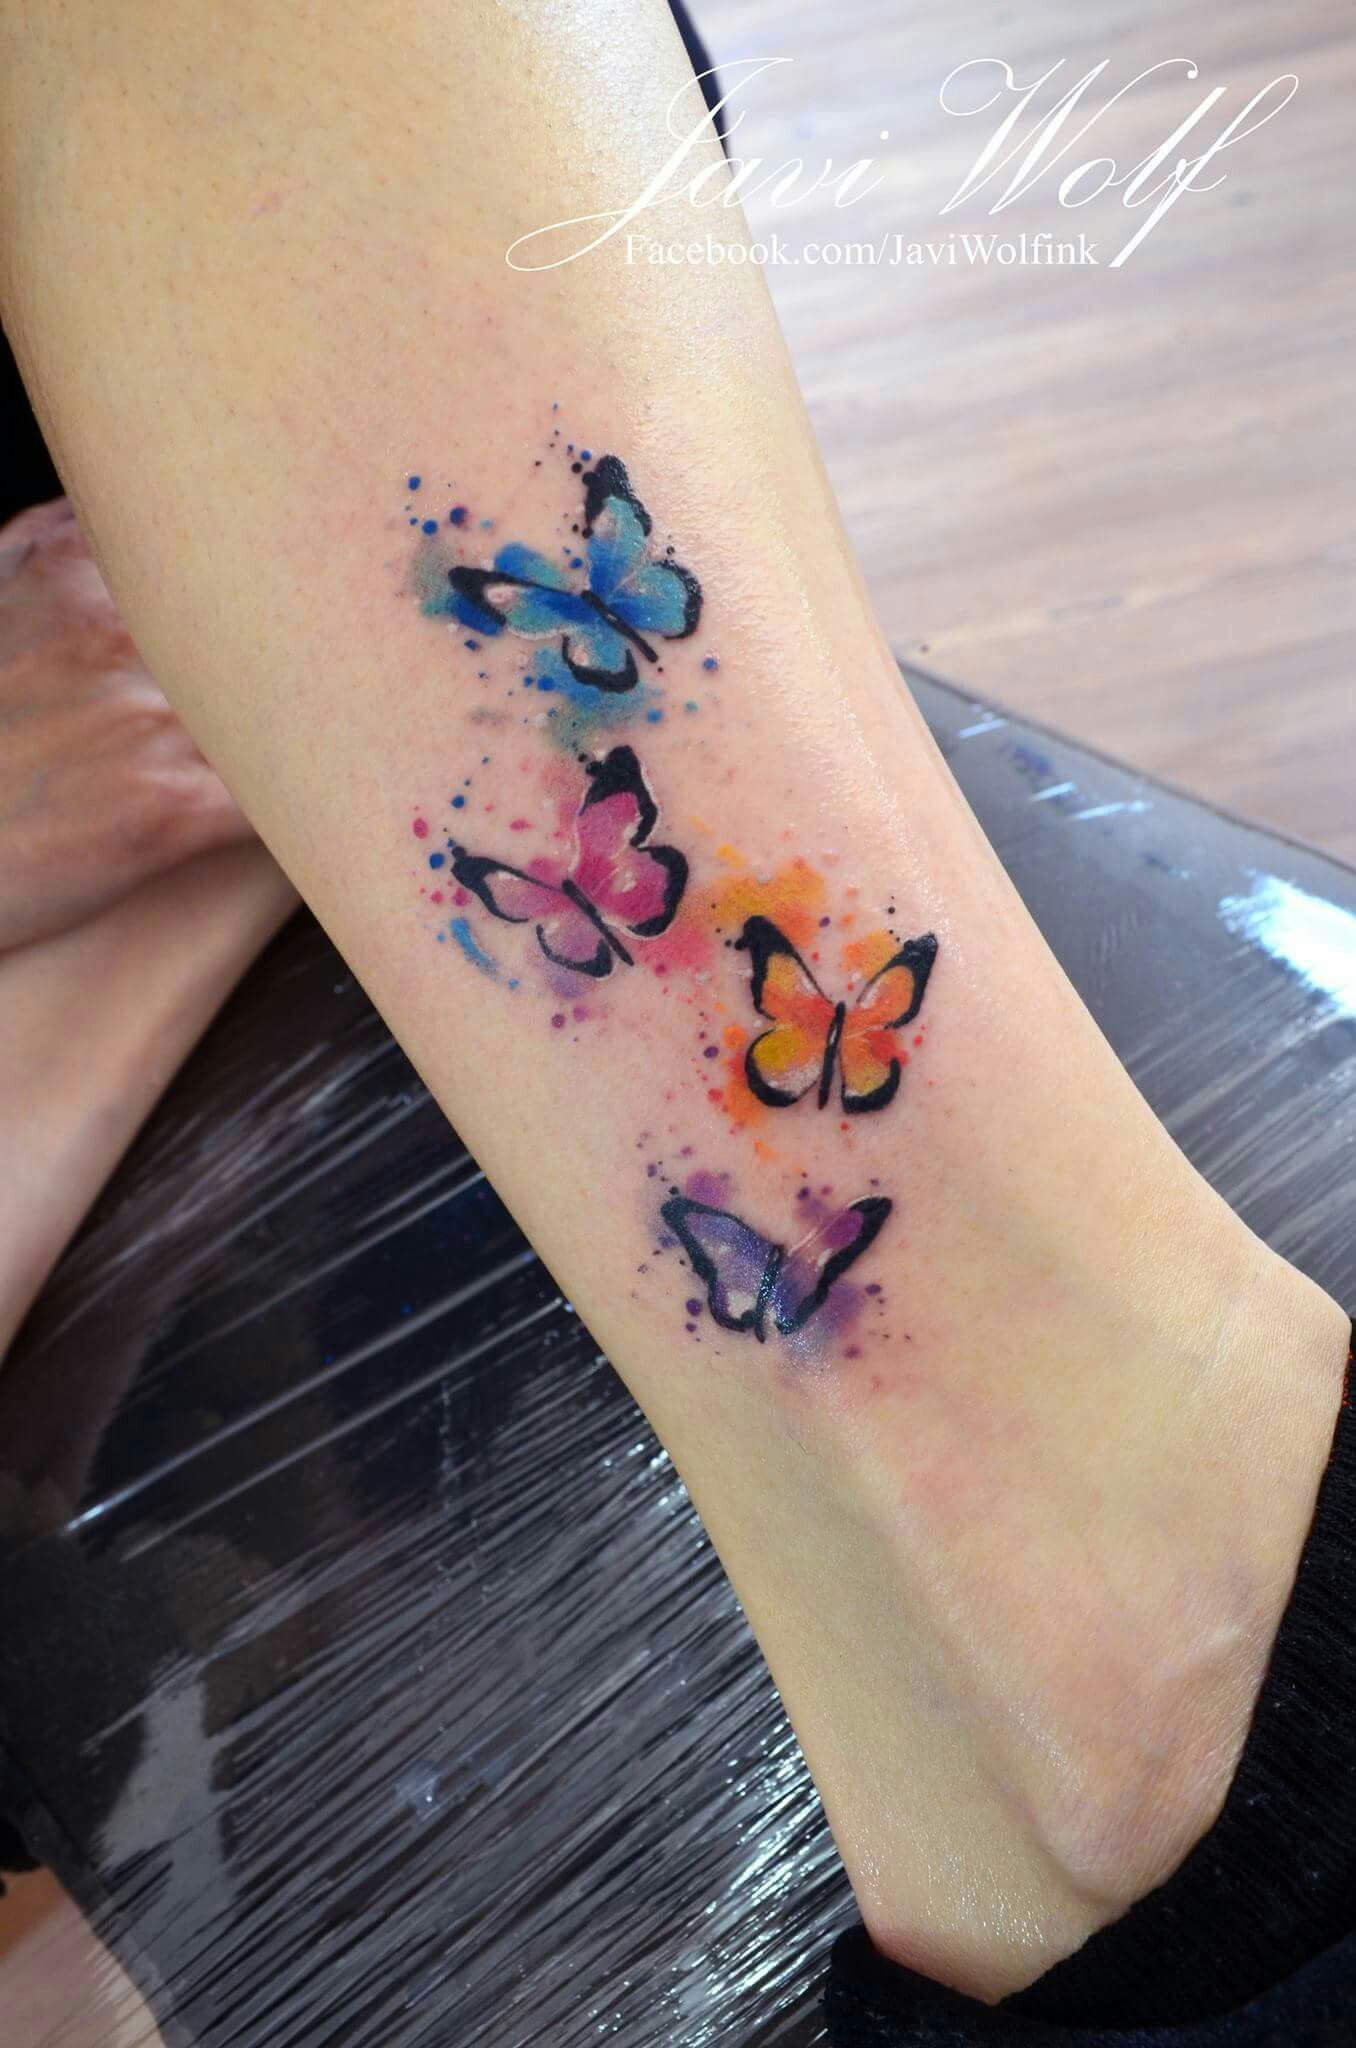 Javi Wolf watercolor butterflies (With images